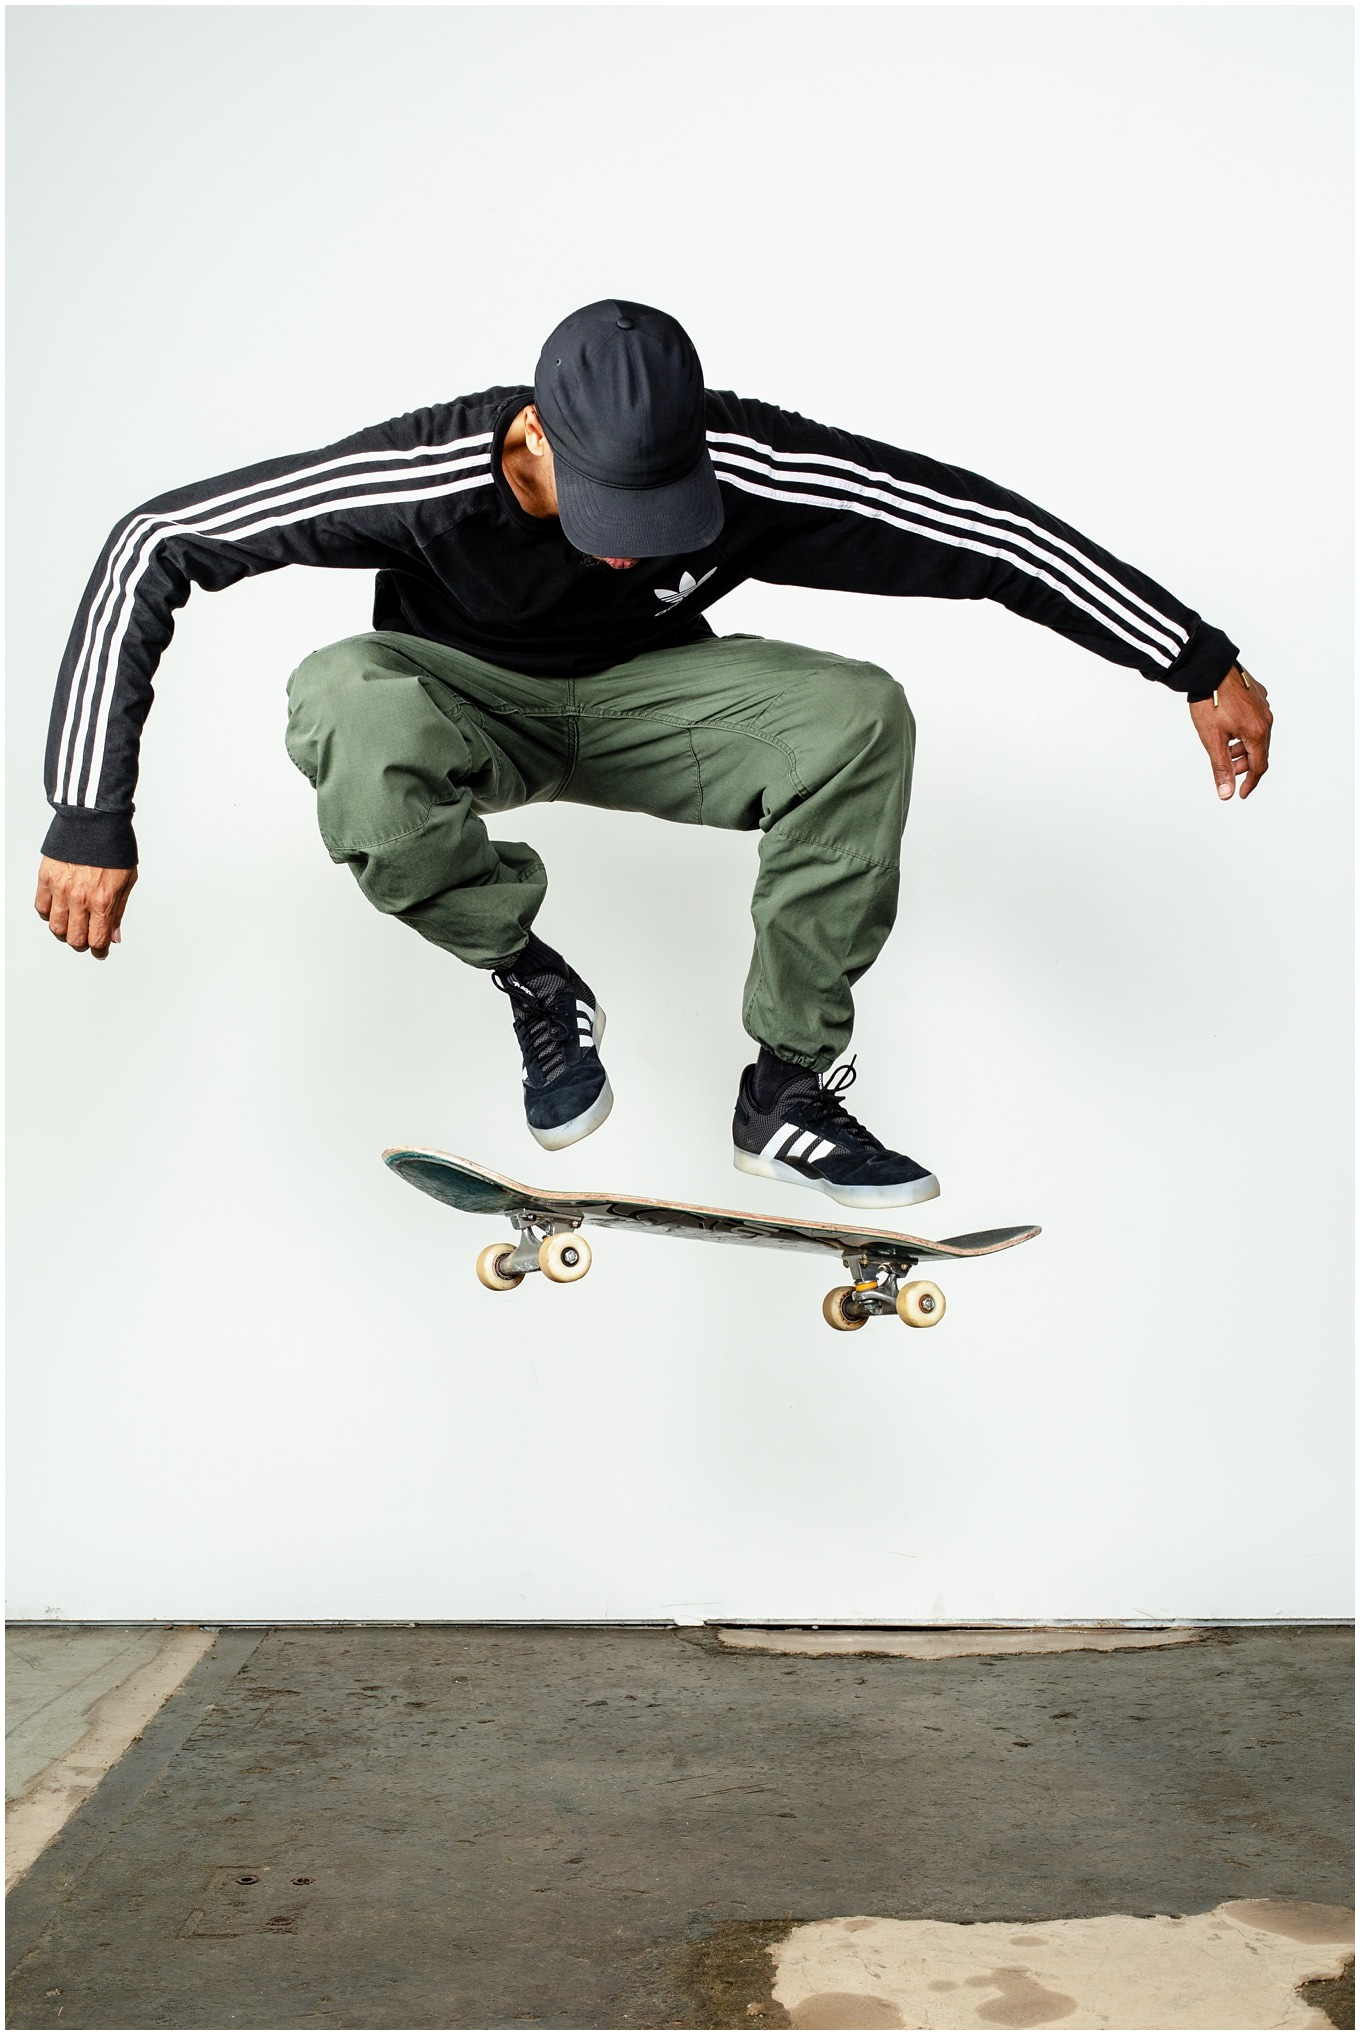 Adam Lowe Photography, skateboarding, skate, embassy, deangelo harris, street style, adidas, switch kickflip, kickflip, studio photography, commercial, editorial, lifestyle, columbus, ohio, switch pop shove-it